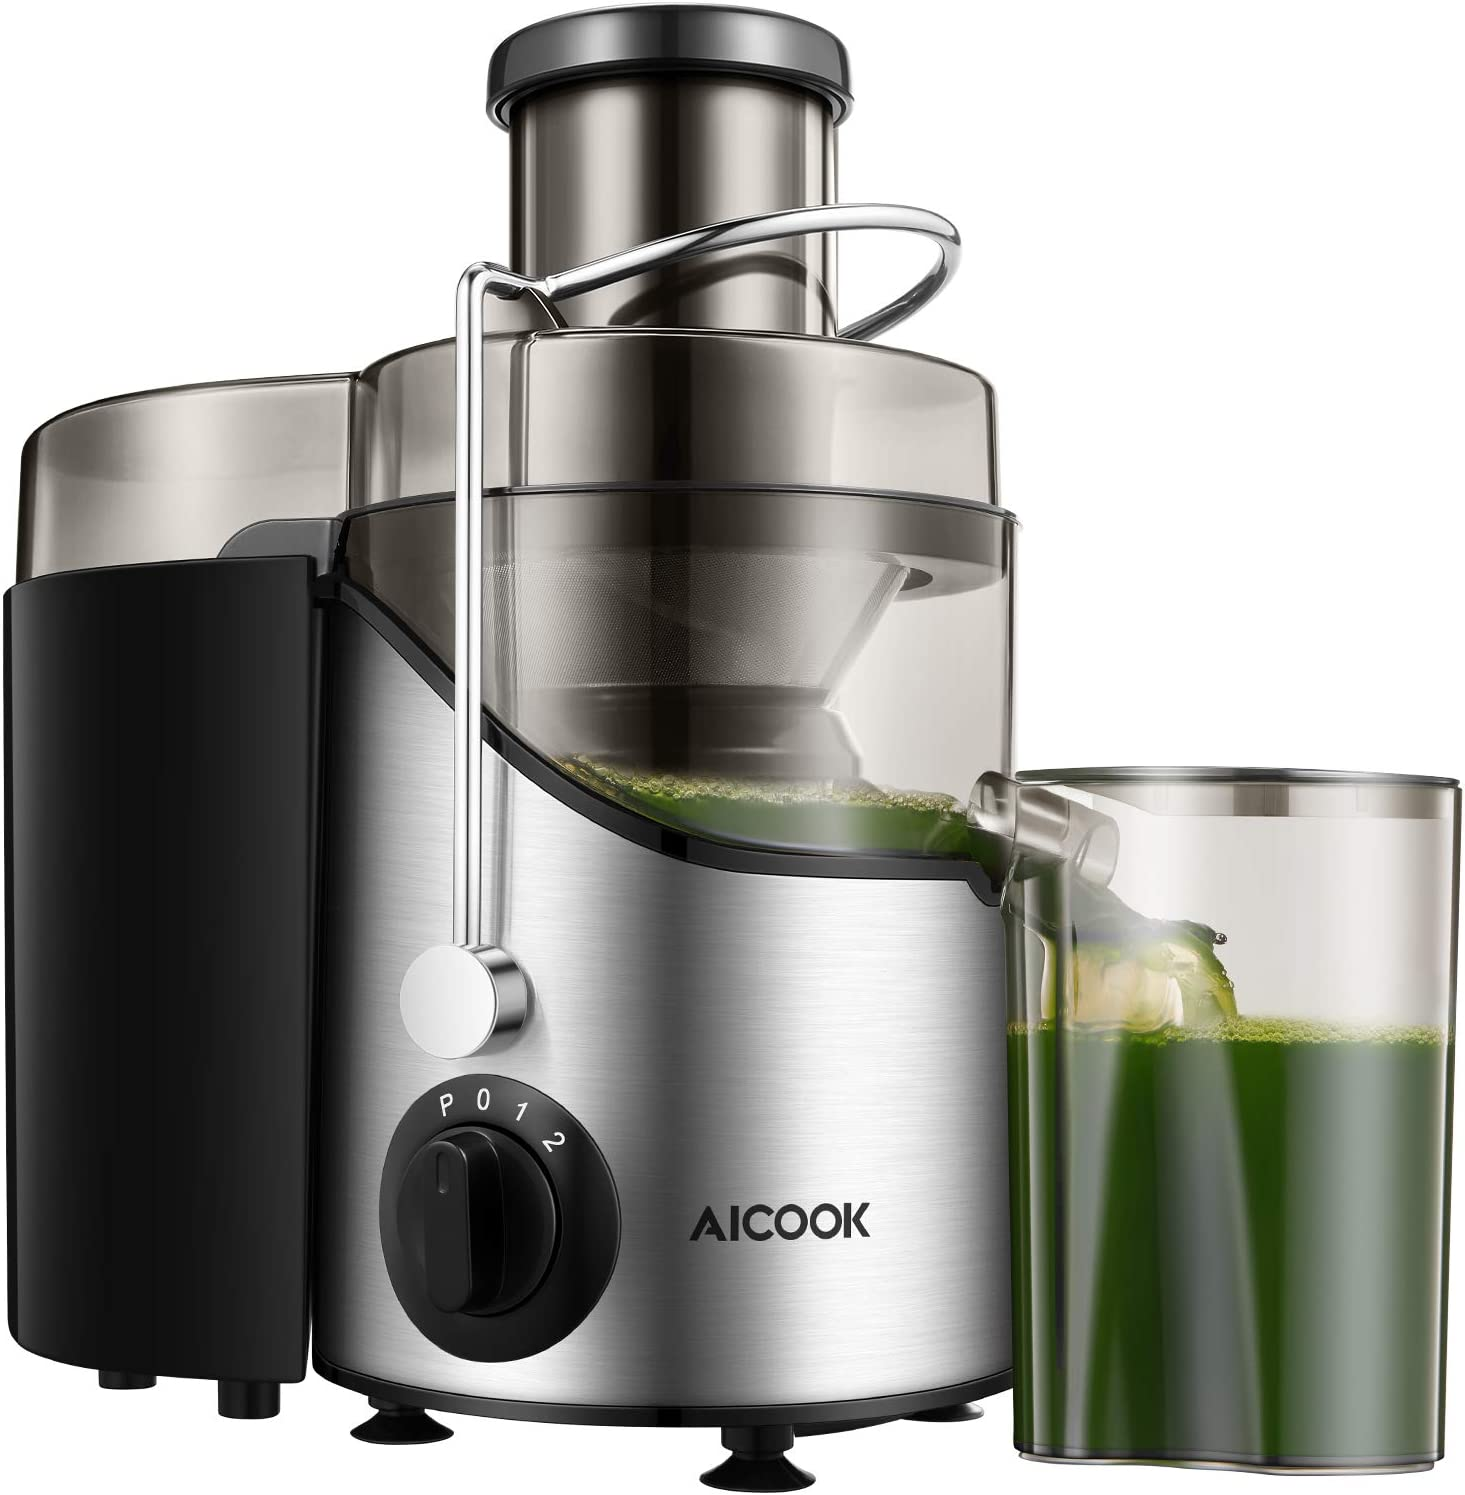 Juicer, Juice Extractor, Aicook Juicer Machine with 3'' Wide Mouth, 3 Speed Centrifugal Juicer for Fruits and Vegs, with Non-Slip Feet, BPA-Free